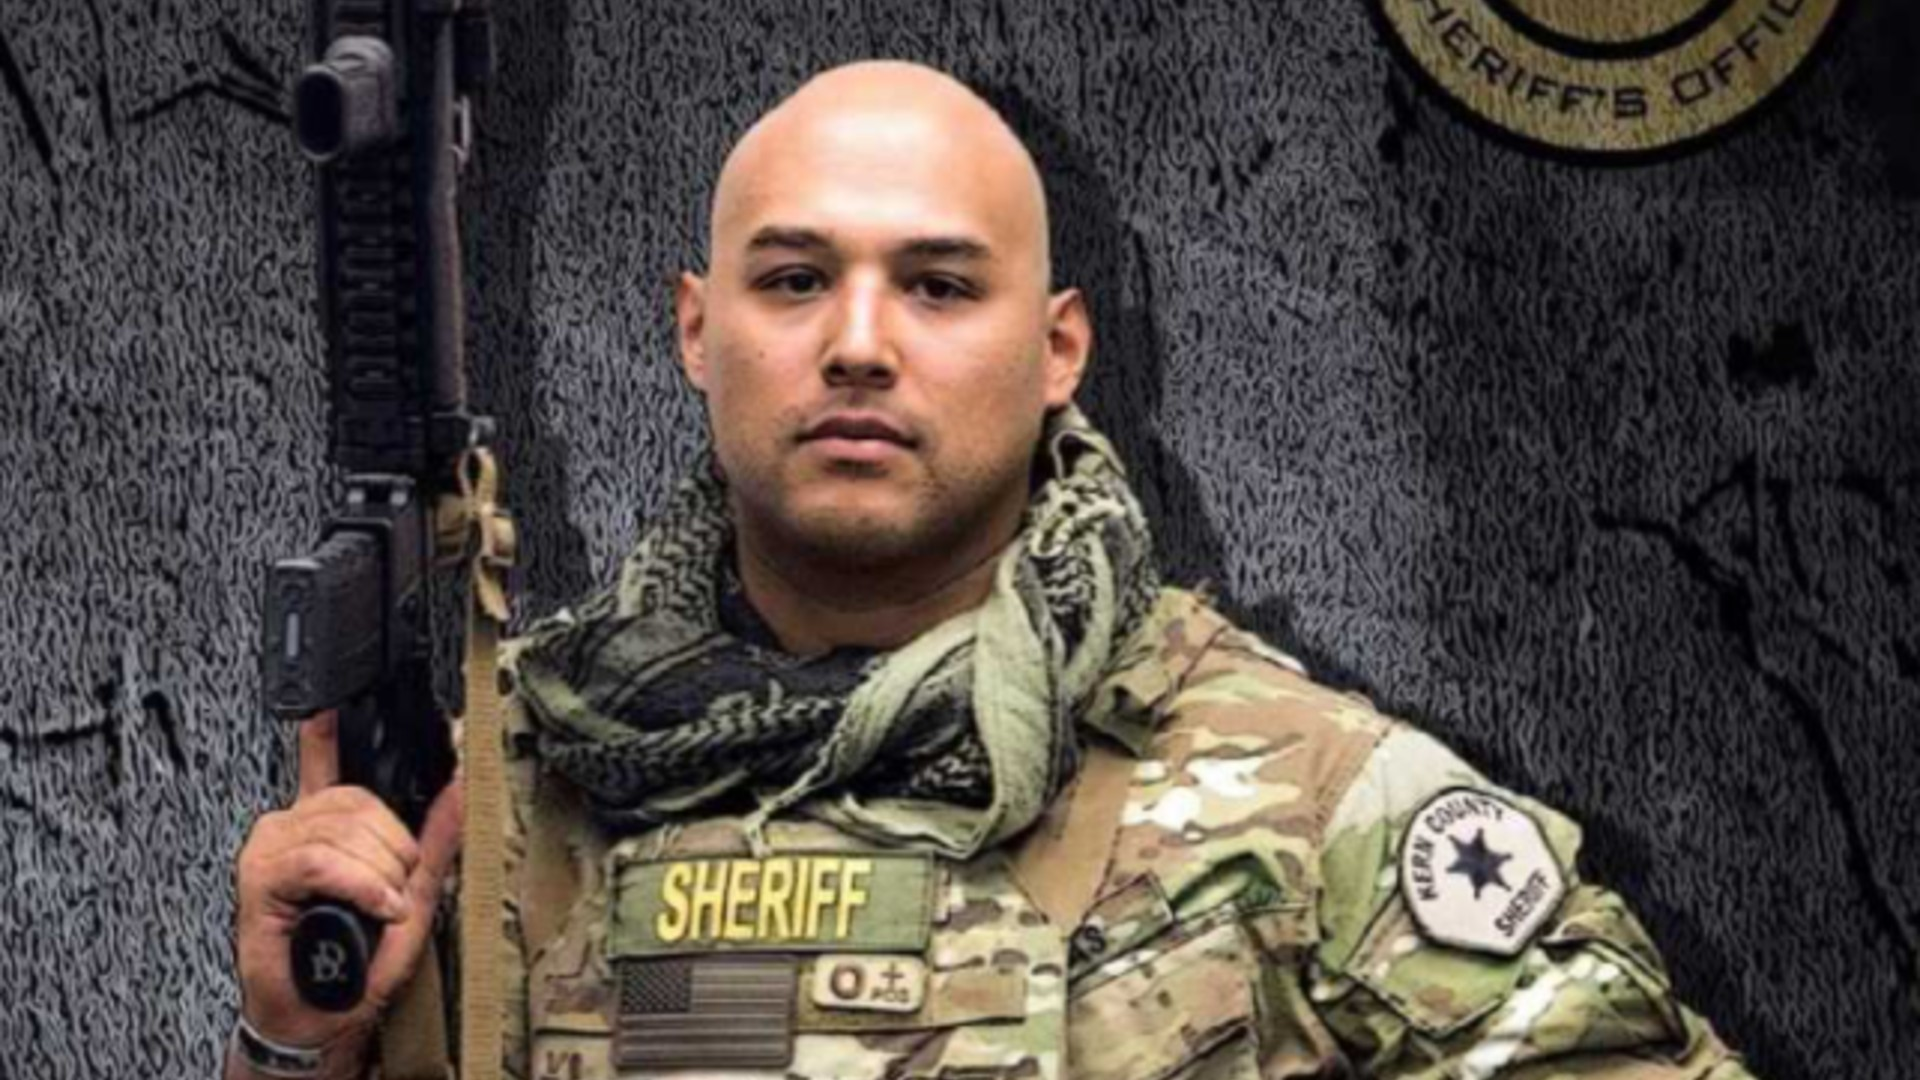 Deputy Phillip Campas is seen in a photo released by the Peace Officers Research Association of California.